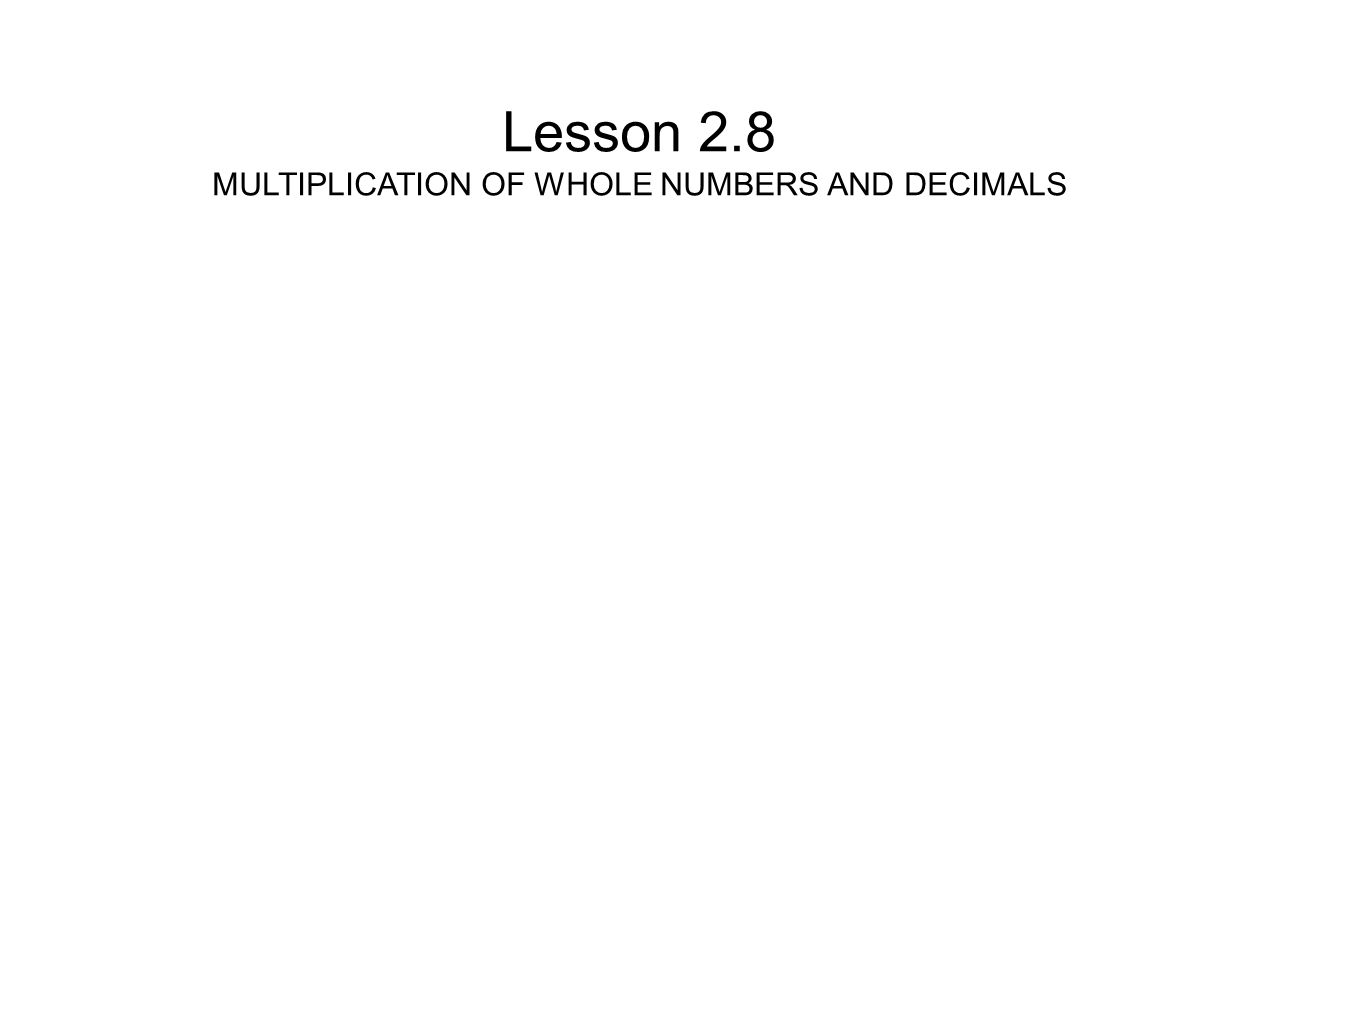 Lesson 2.8 MULTIPLICATION OF WHOLE NUMBERS AND DECIMALS